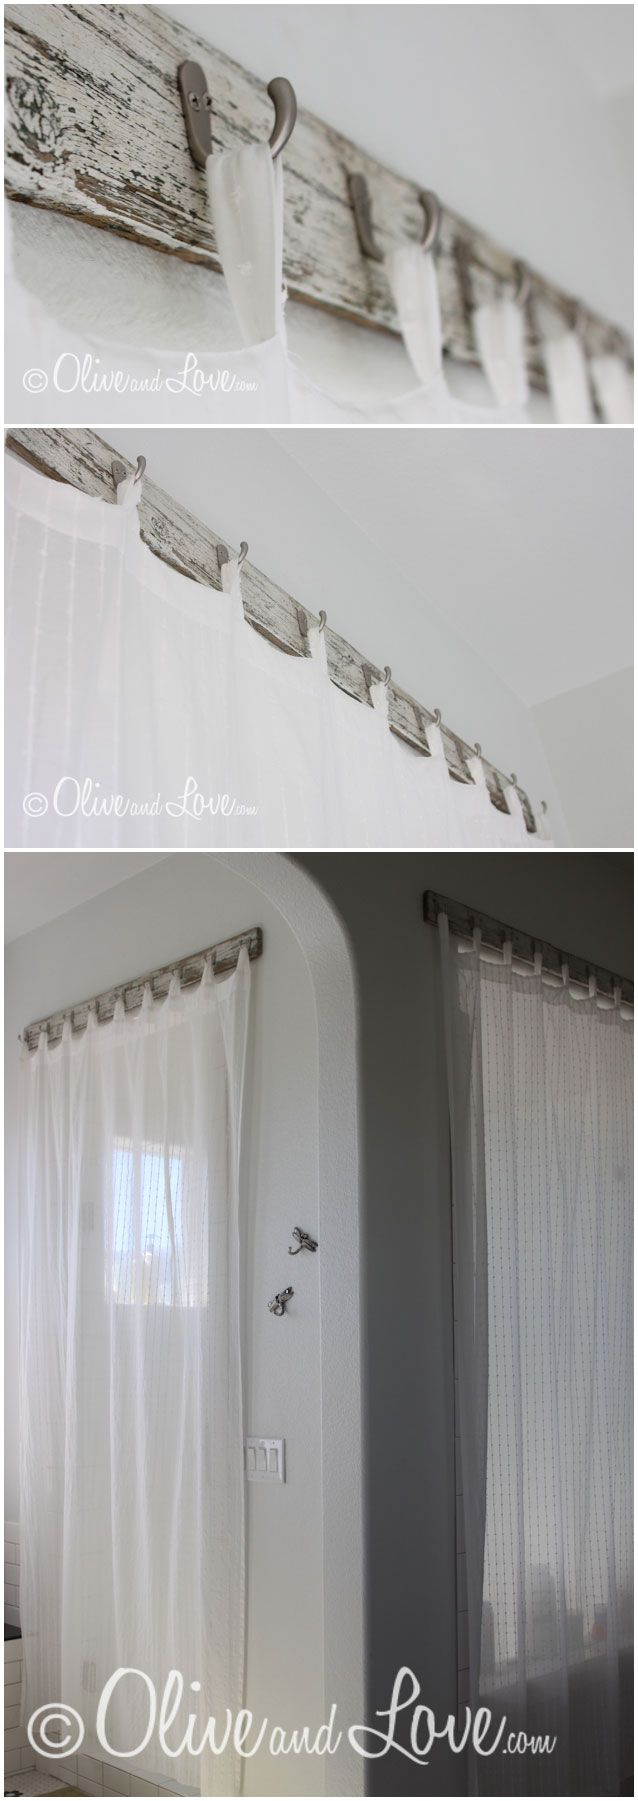 Hang curtains the new way! Scrap wood from an old bench, cheap hooks and sheer curtains